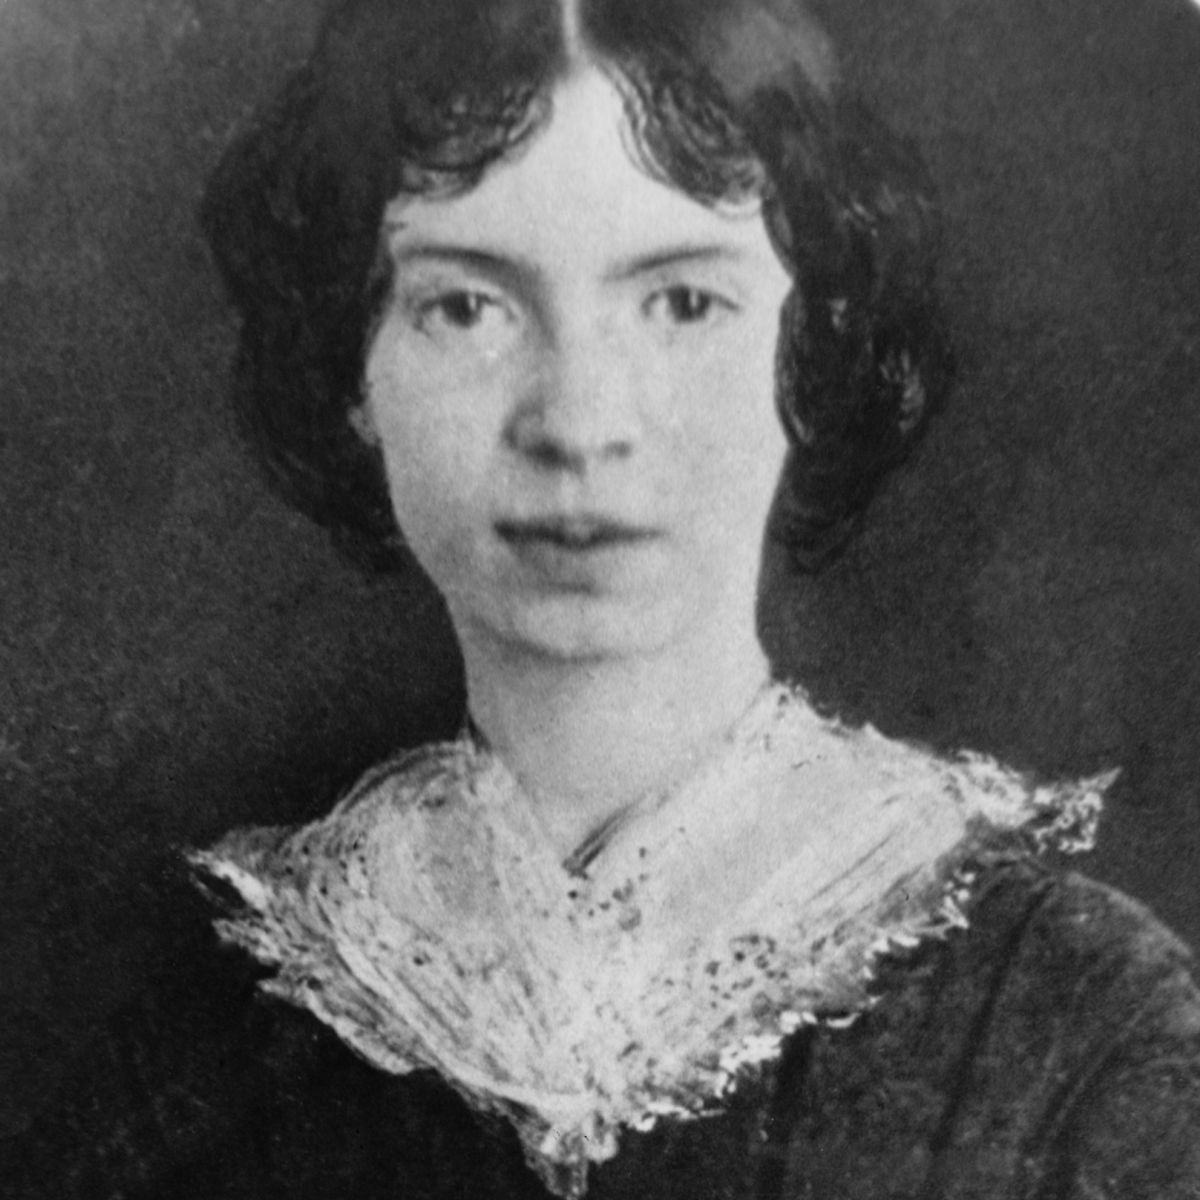 solitude emily dickinson analysis The mythic solitude of the poet of amherst hides an enigma conflicting with the   rw franklin's collected poems of emily dickinson, wherein he analyzed her.